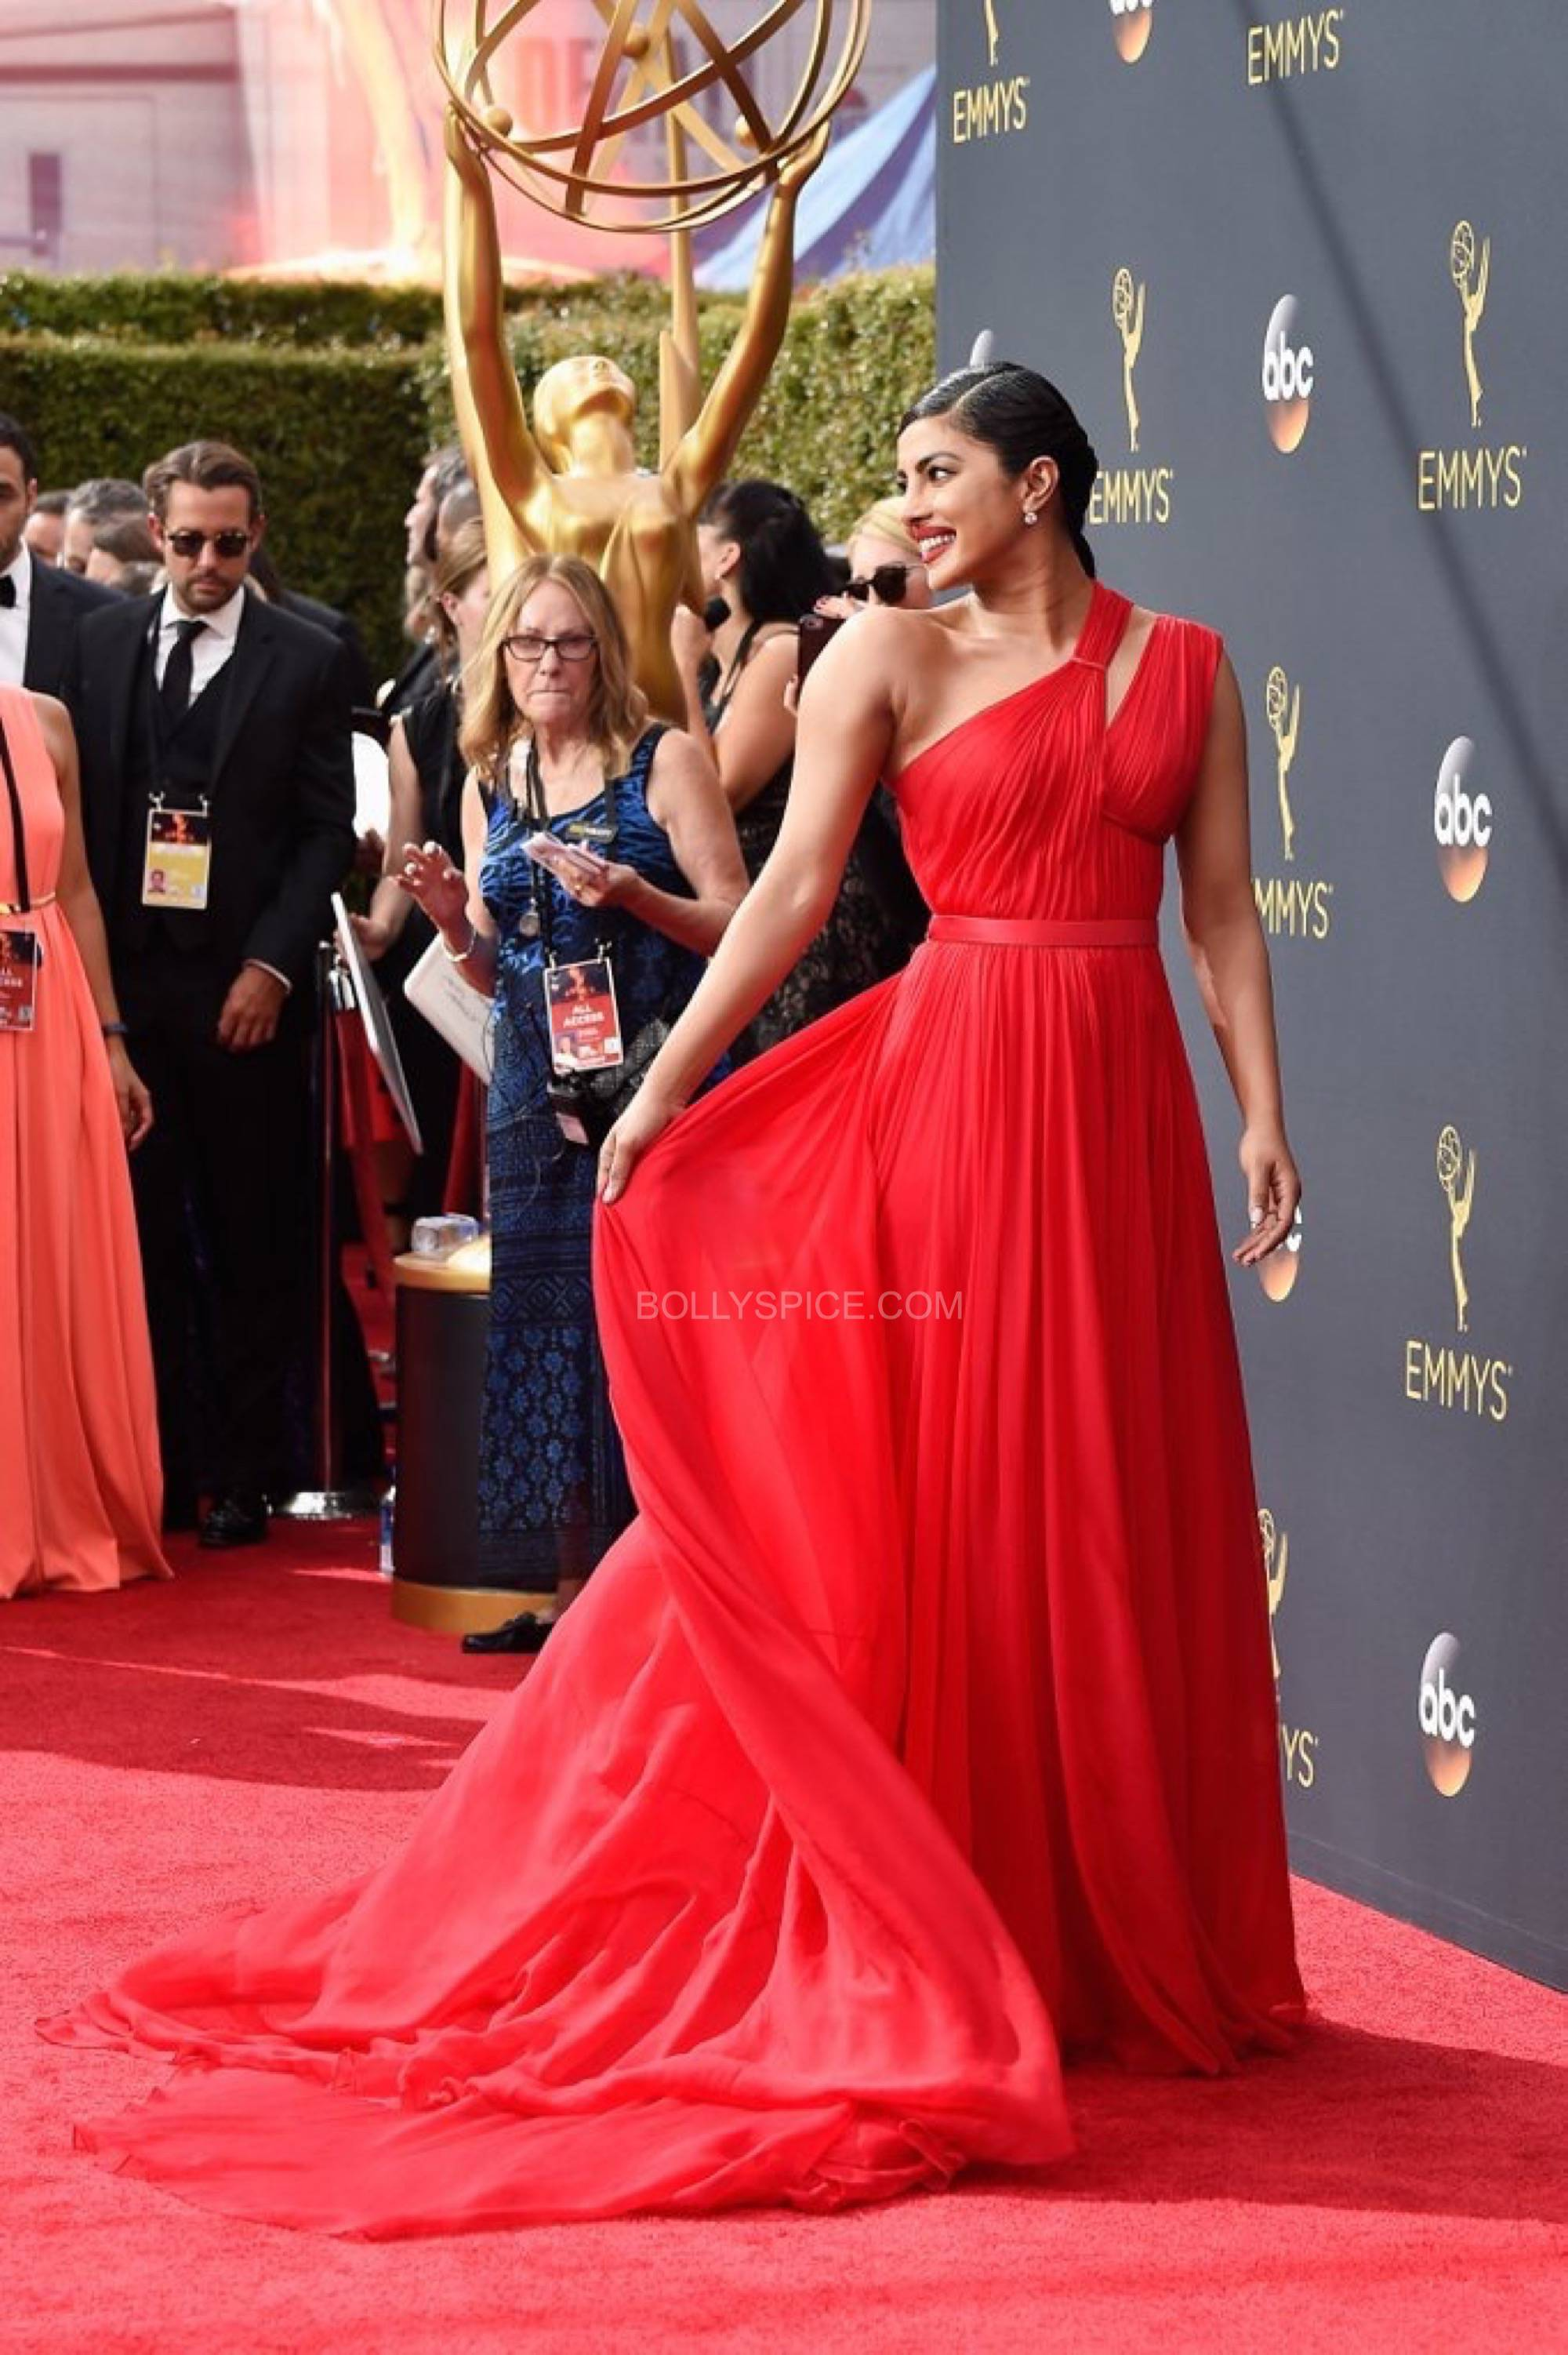 priyanka-chopra-red-dress-emmys-2016-2